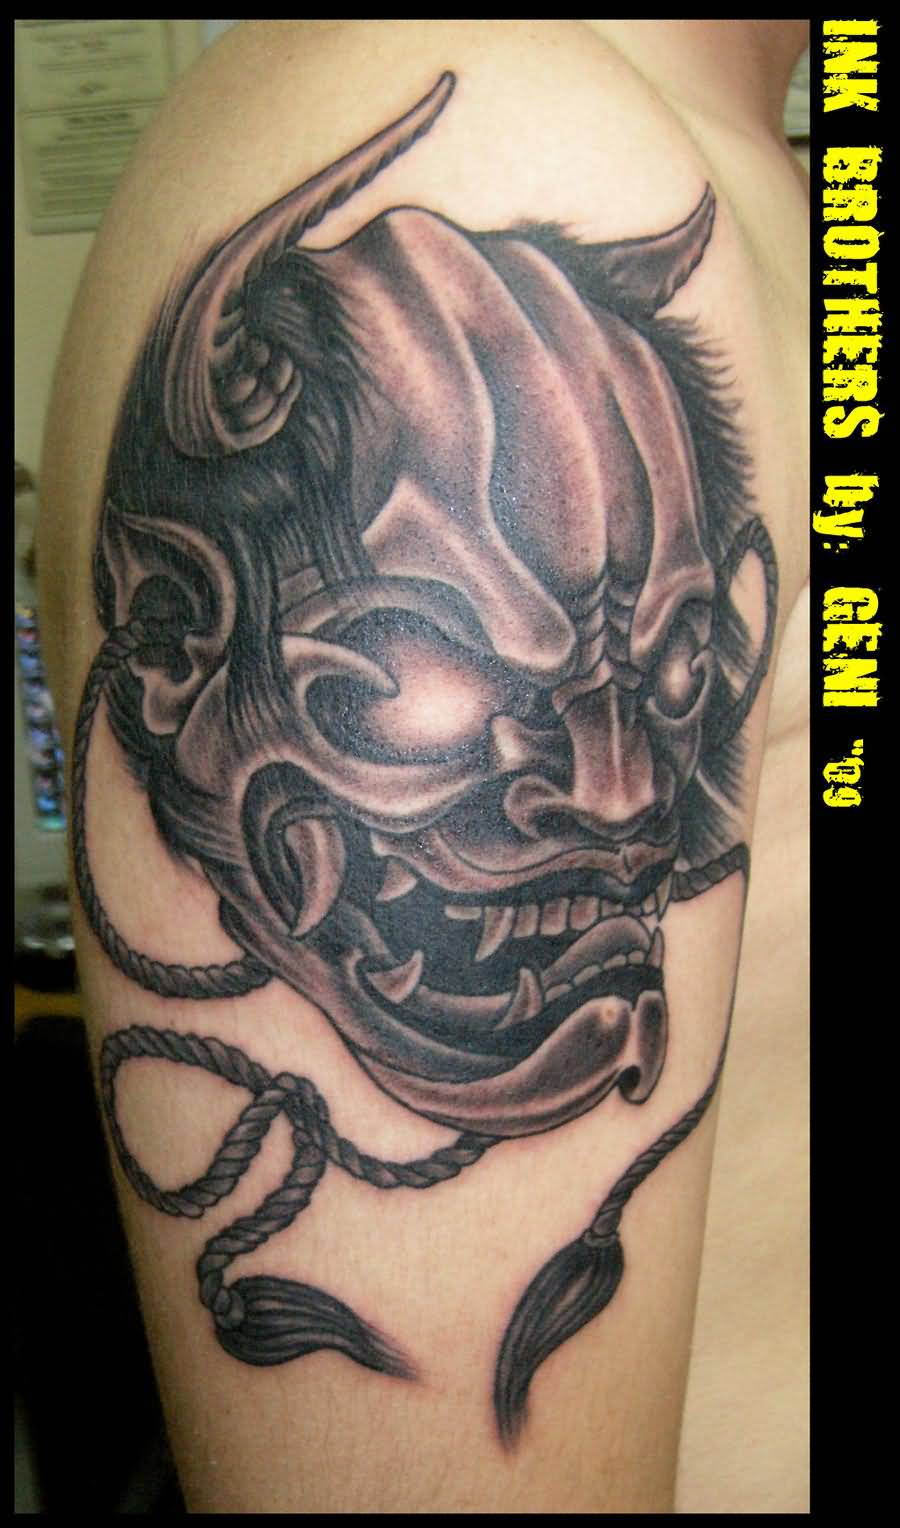 Famous Mask Tattoo Design On Upper Arm